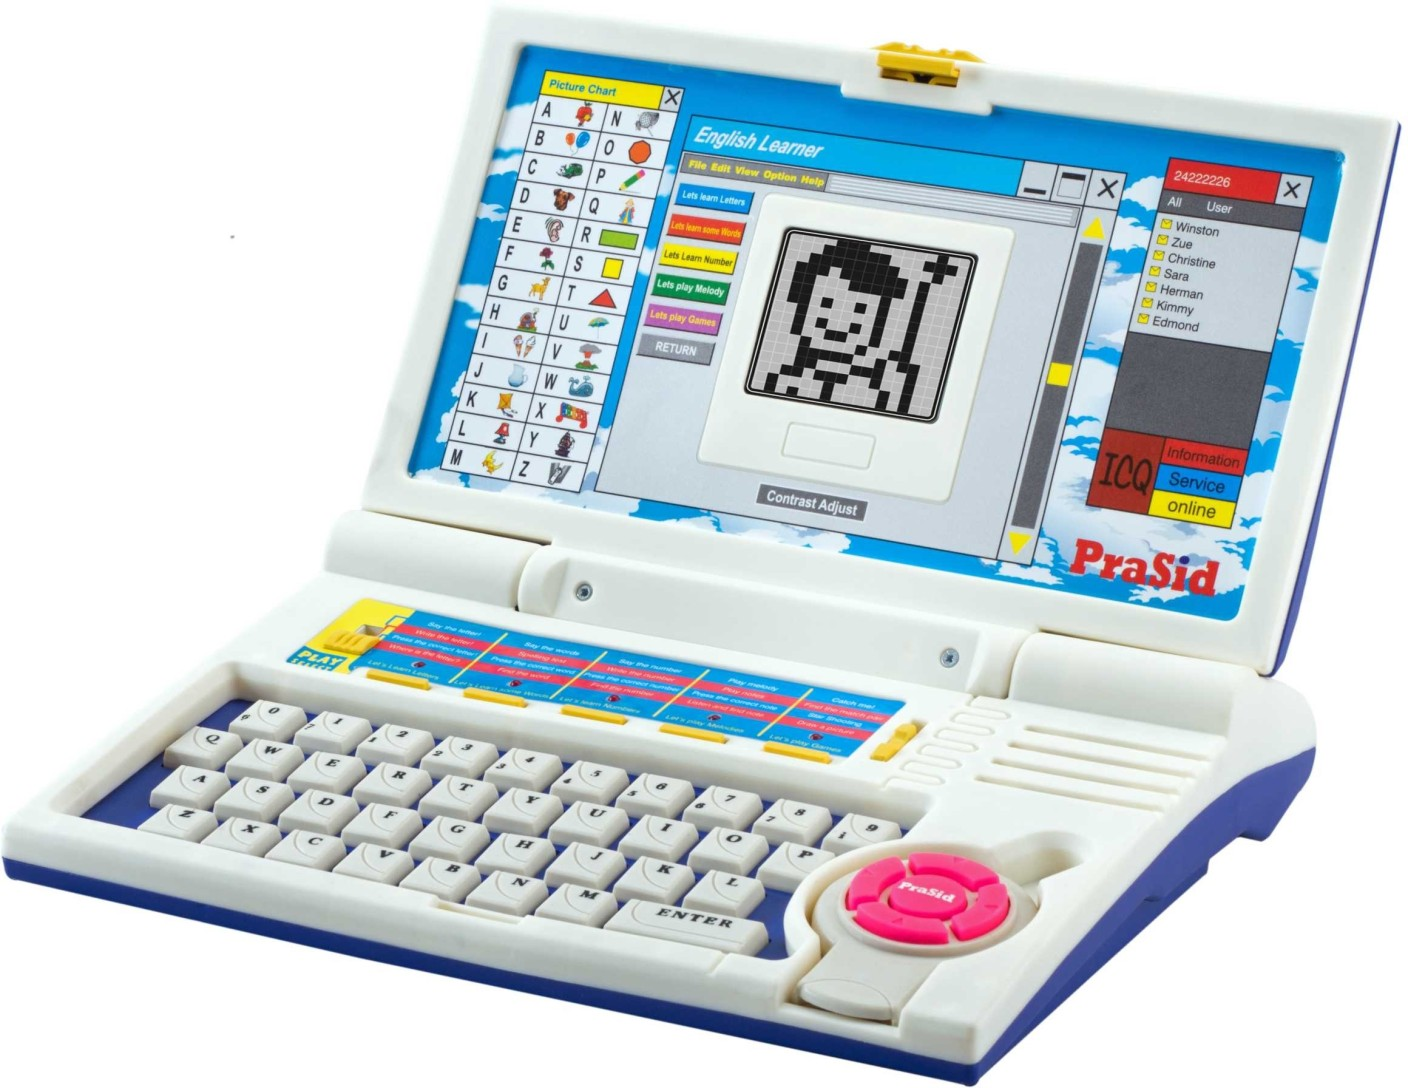 Computer Learning Toys : Prasid english learner kids laptop price in india buy